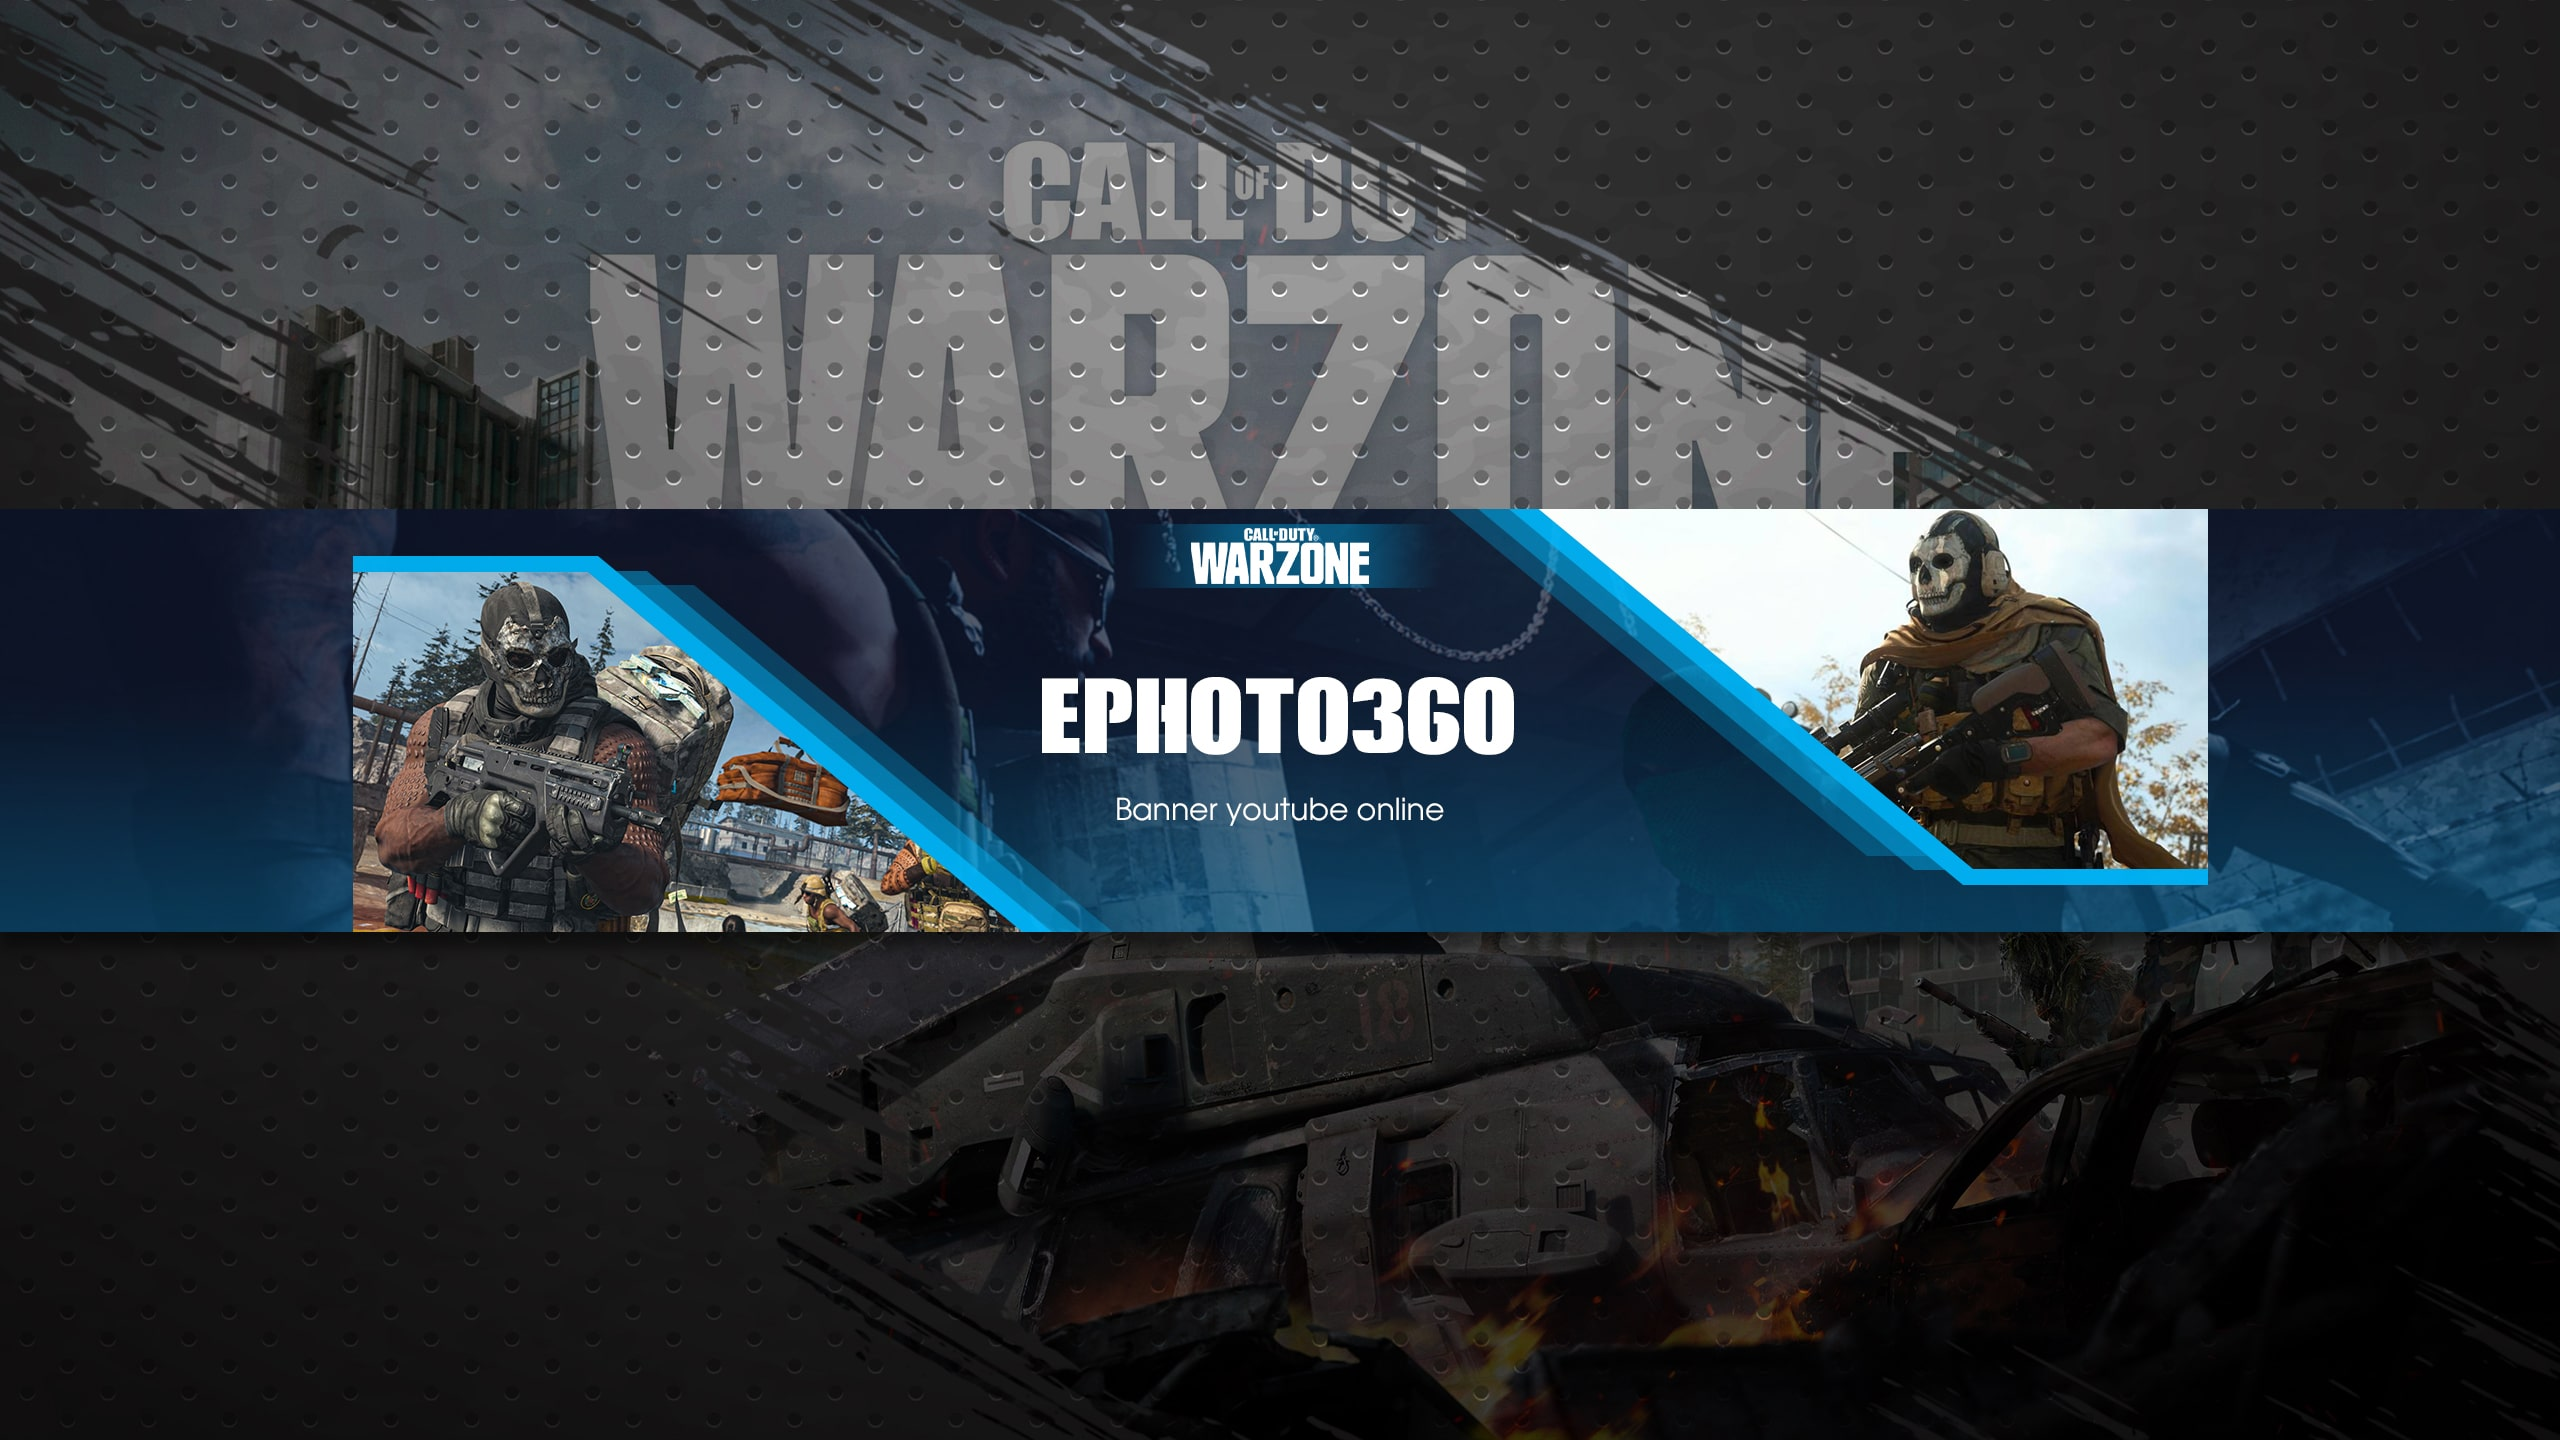 Upload images, logos, or choose from crello's 80m photo library. Create Call Of Duty Warzone Youtube Banner Online